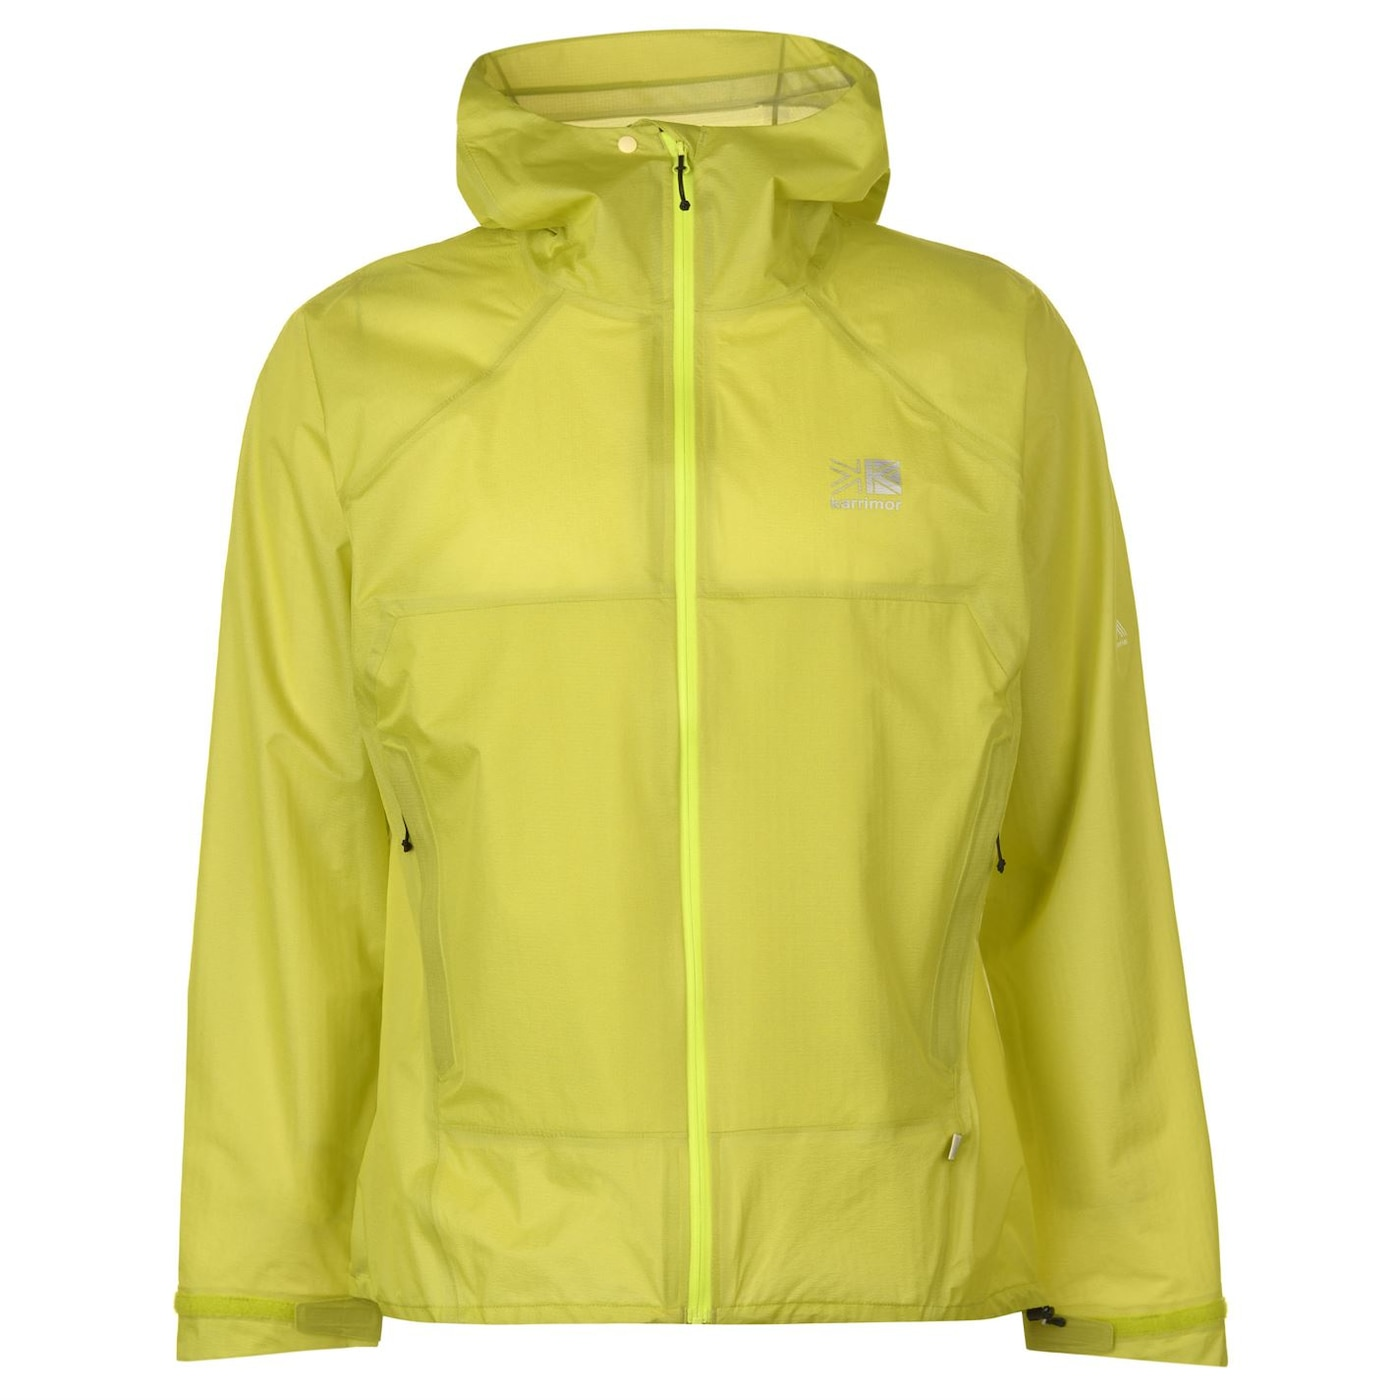 cad897fed6e6 Karrimor Beaufort 3 Layer Weathertite Jacket Mens